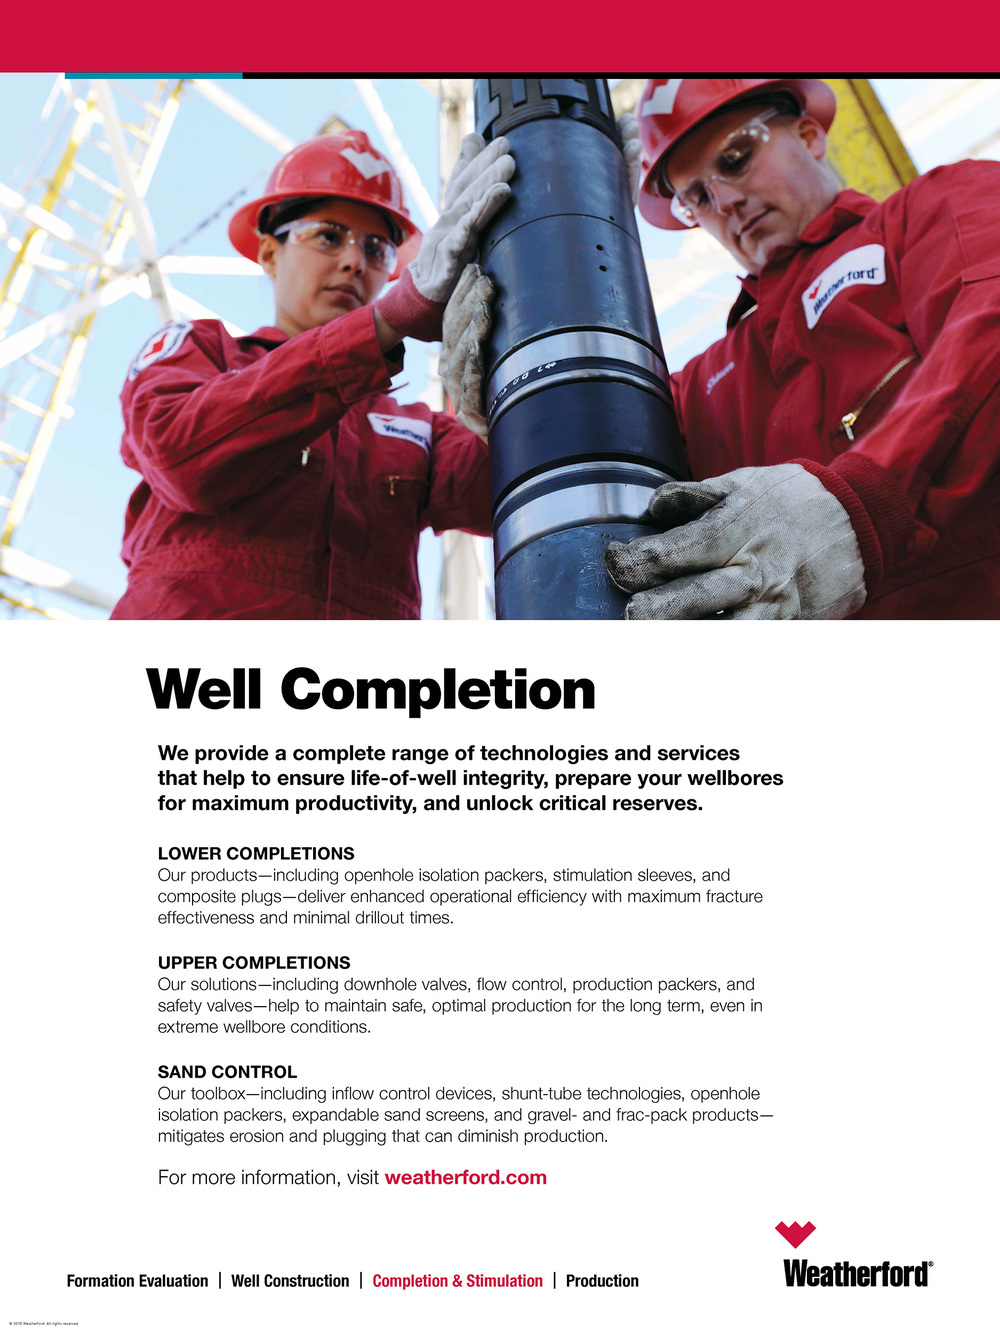 Well Completion_30x40.jpg